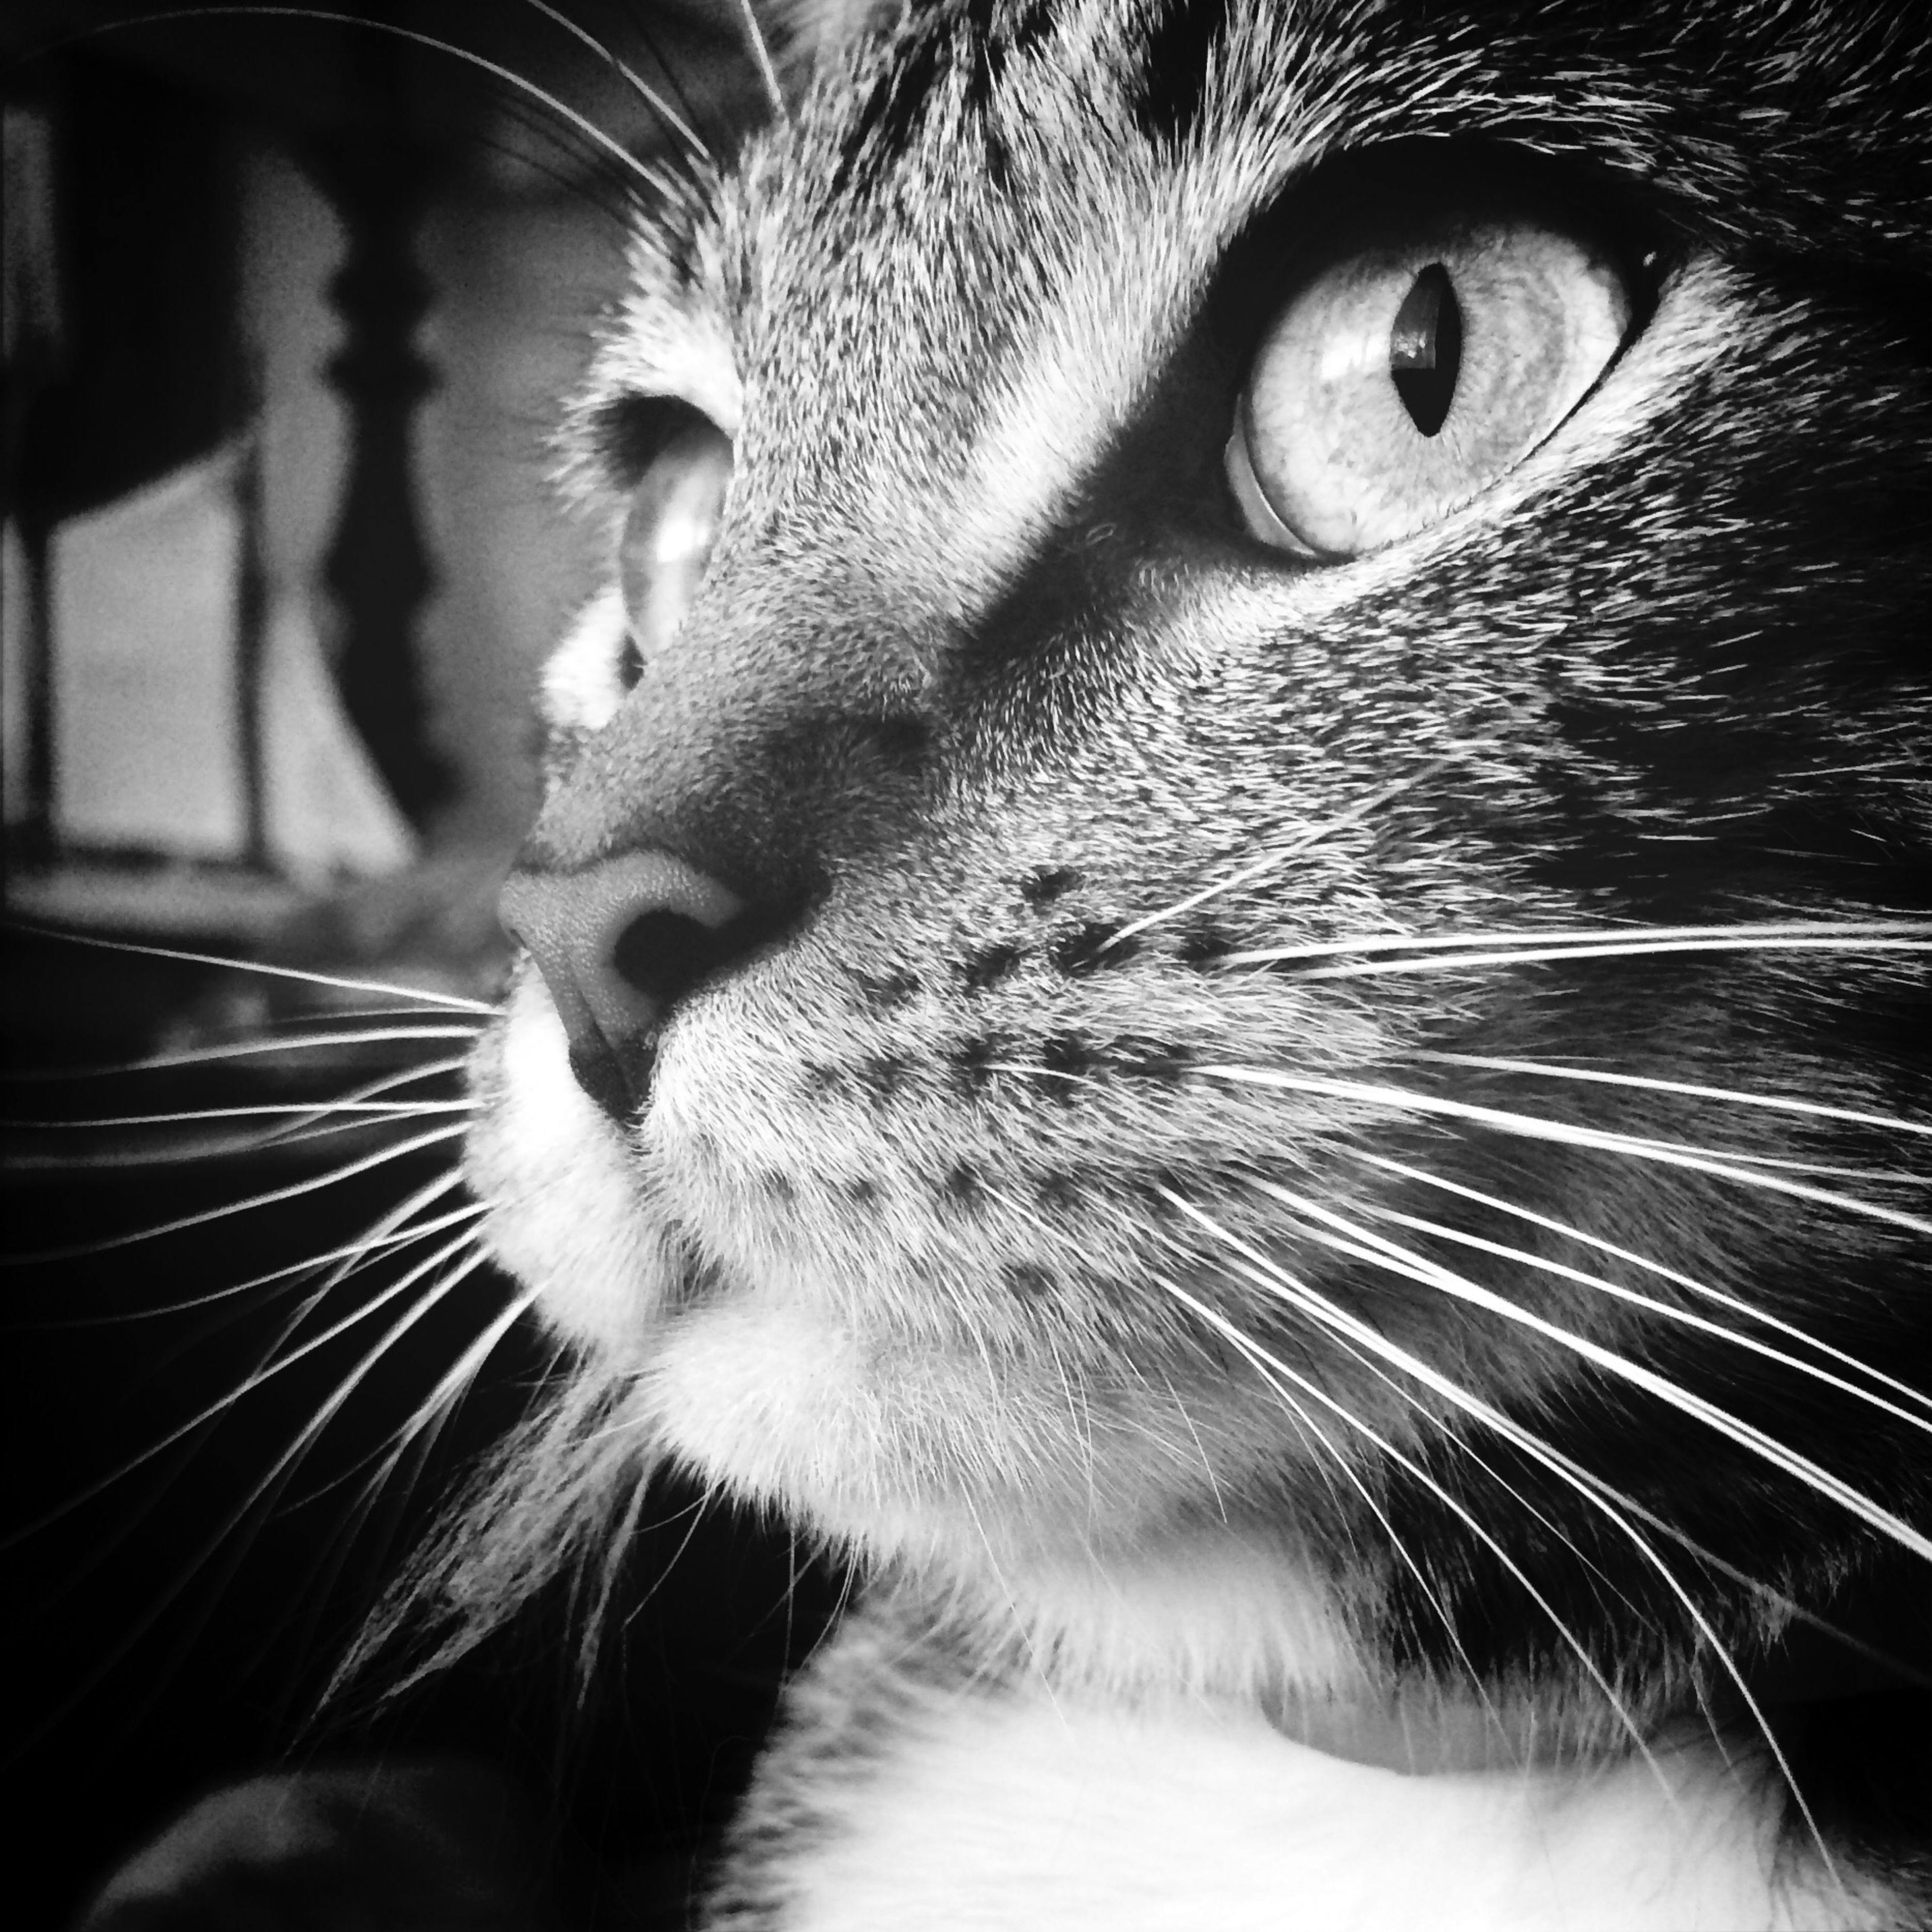 one animal, animal themes, domestic cat, cat, animal head, pets, whisker, domestic animals, close-up, mammal, feline, animal body part, animal eye, indoors, part of, looking away, animal nose, staring, snout, focus on foreground